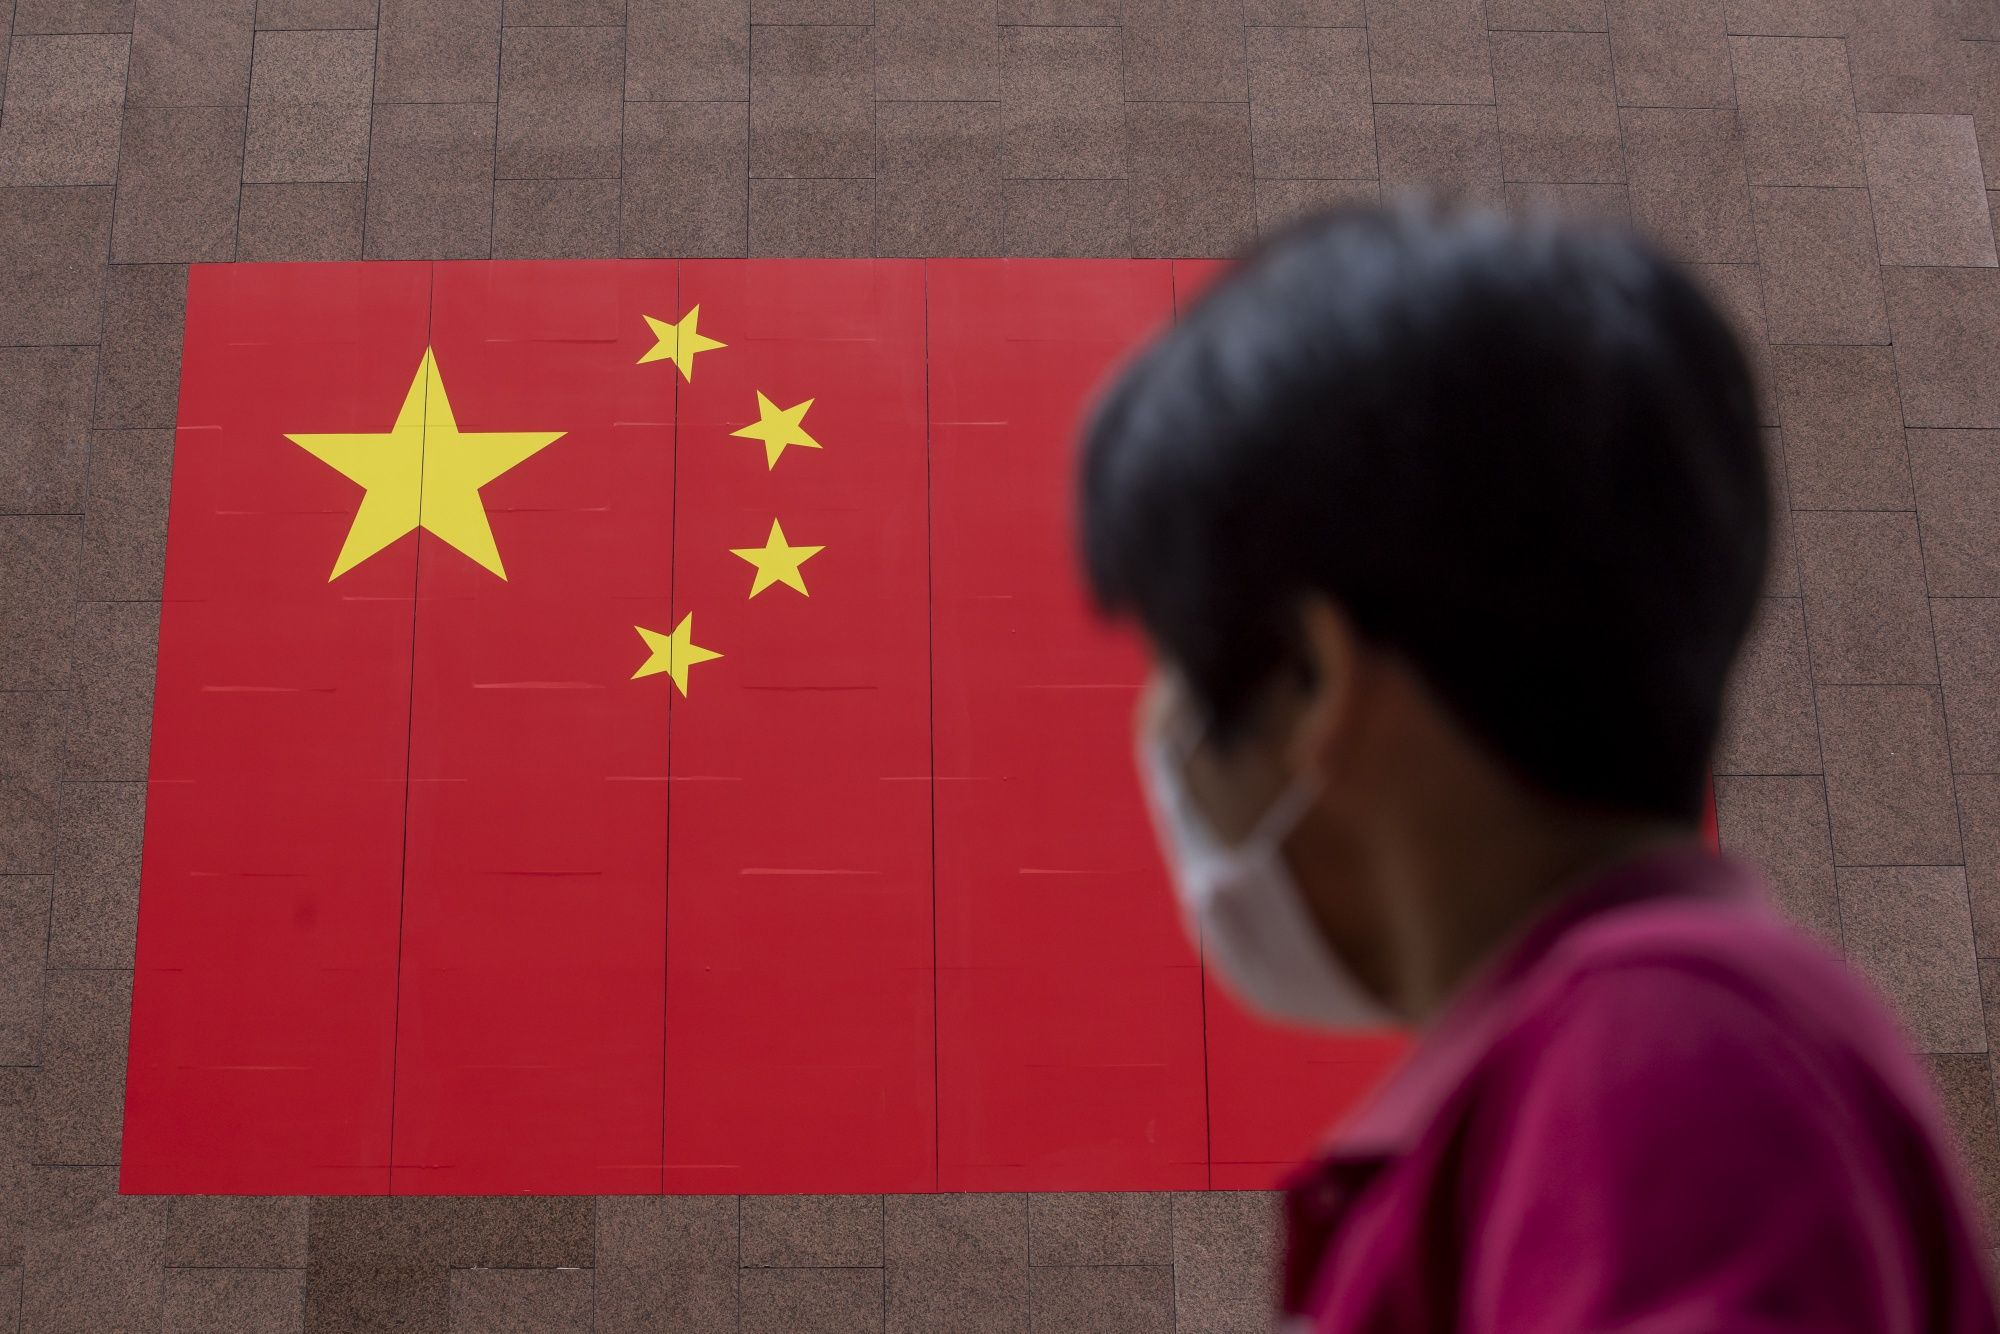 A pedestrian wearing a protective mask walks past a Chinese national flag displayed outside a hotel on National Day in Hong Kong, China, on Thursday, Oct. 1, 2020. Hong Kong leader Carrie Lam declared a return of stability, even as authorities deployed thousands of riot police and threats of arrests to deter protesters from returning to the streets in the Asian financial center. Photographer: Paul Yeung/Bloomberg